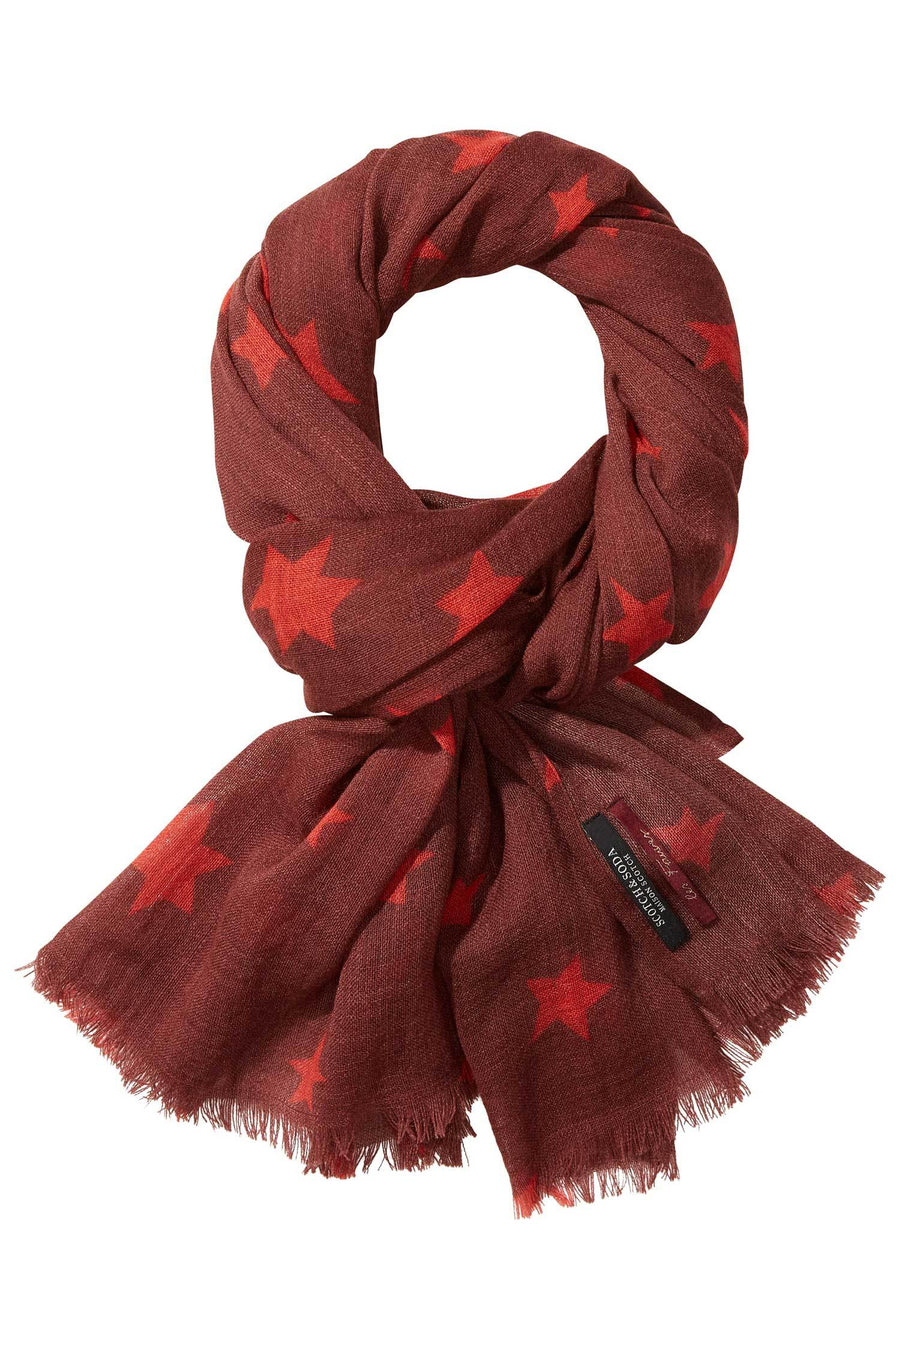 Shop Online Star Printed Wool Scarf by Maison Scotch  Frockaholics Accessories